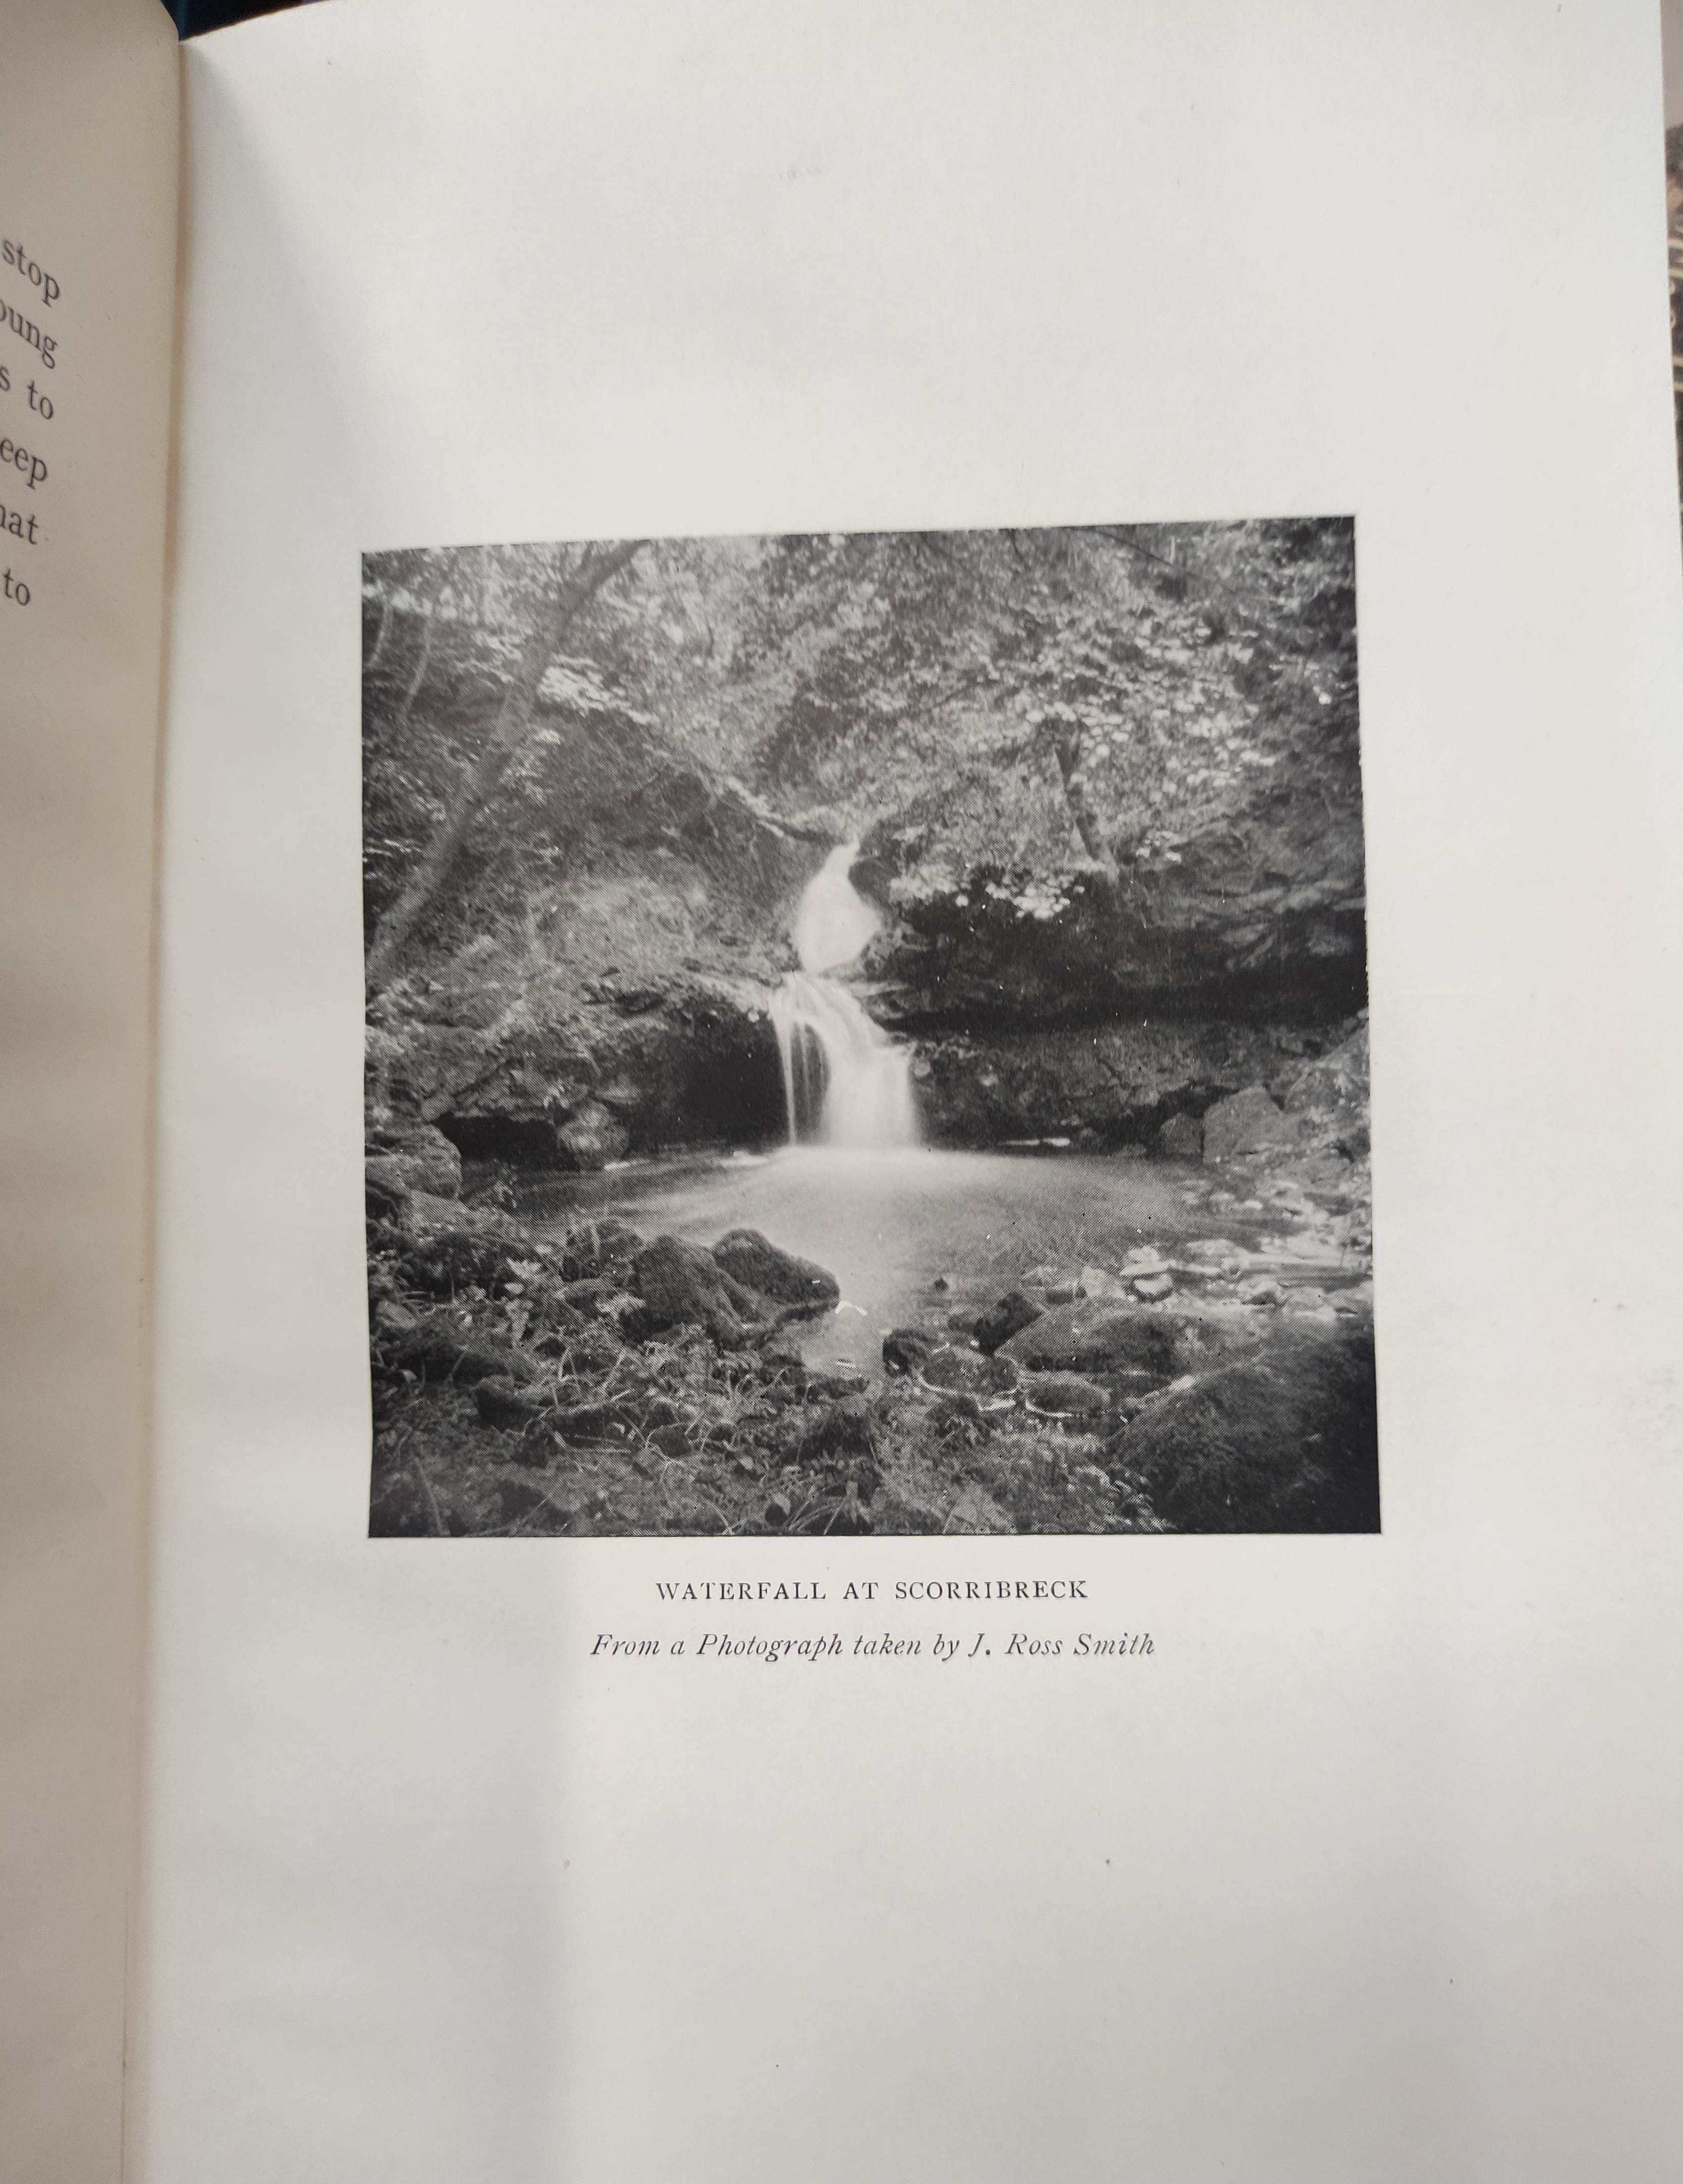 NICOLSON ALEX.History of Skye, A Record of the Families, the Social Conditions & the Literature of - Image 4 of 4